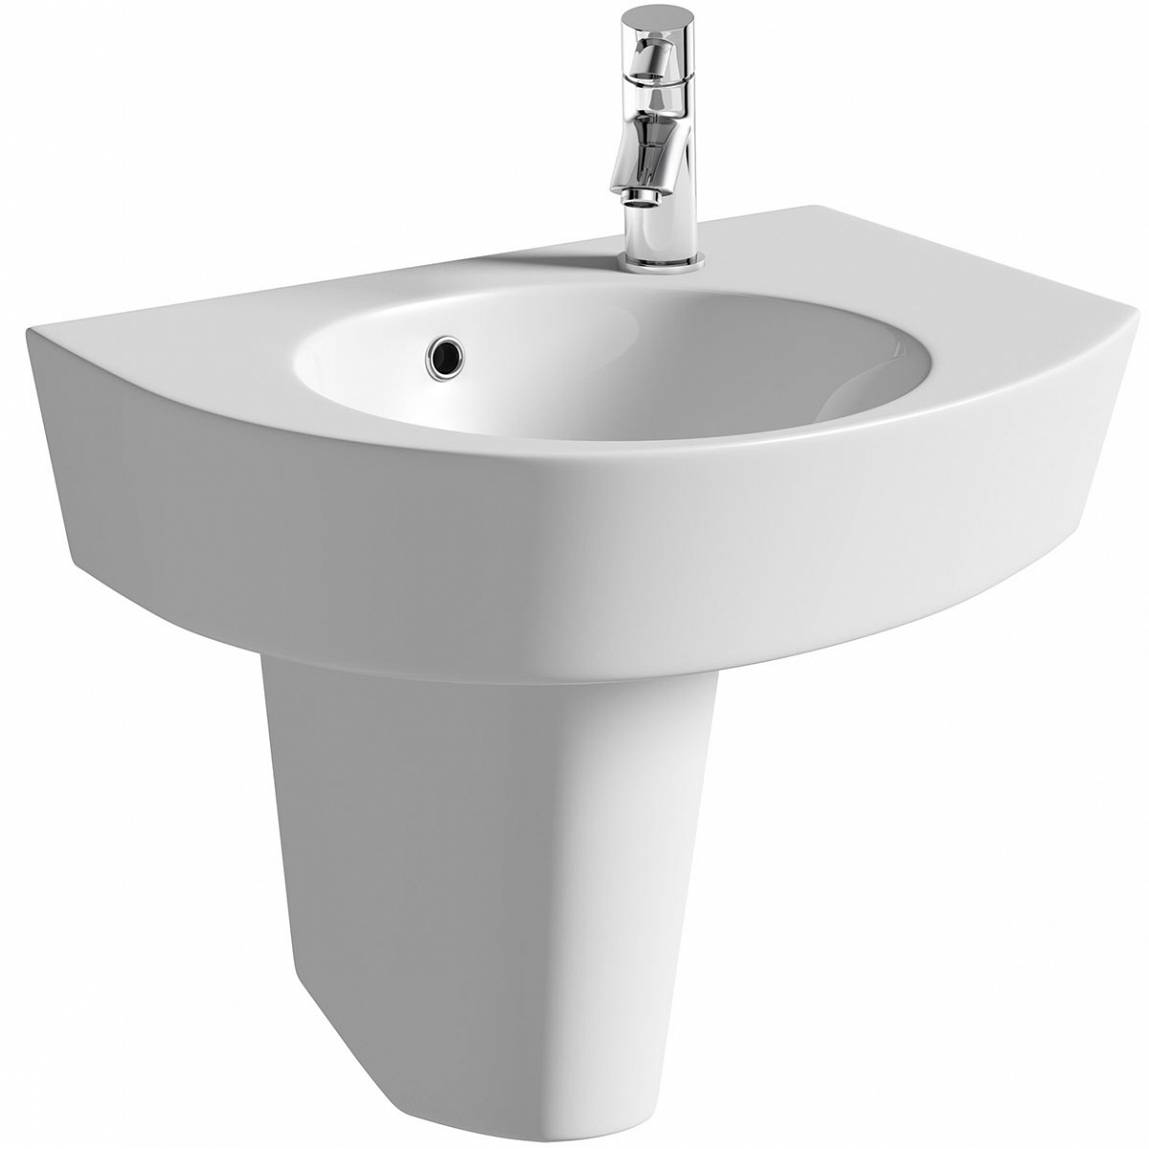 Image of Ancona 1TH 580mm RH Basin & Semi Pedestal PLUS Waste